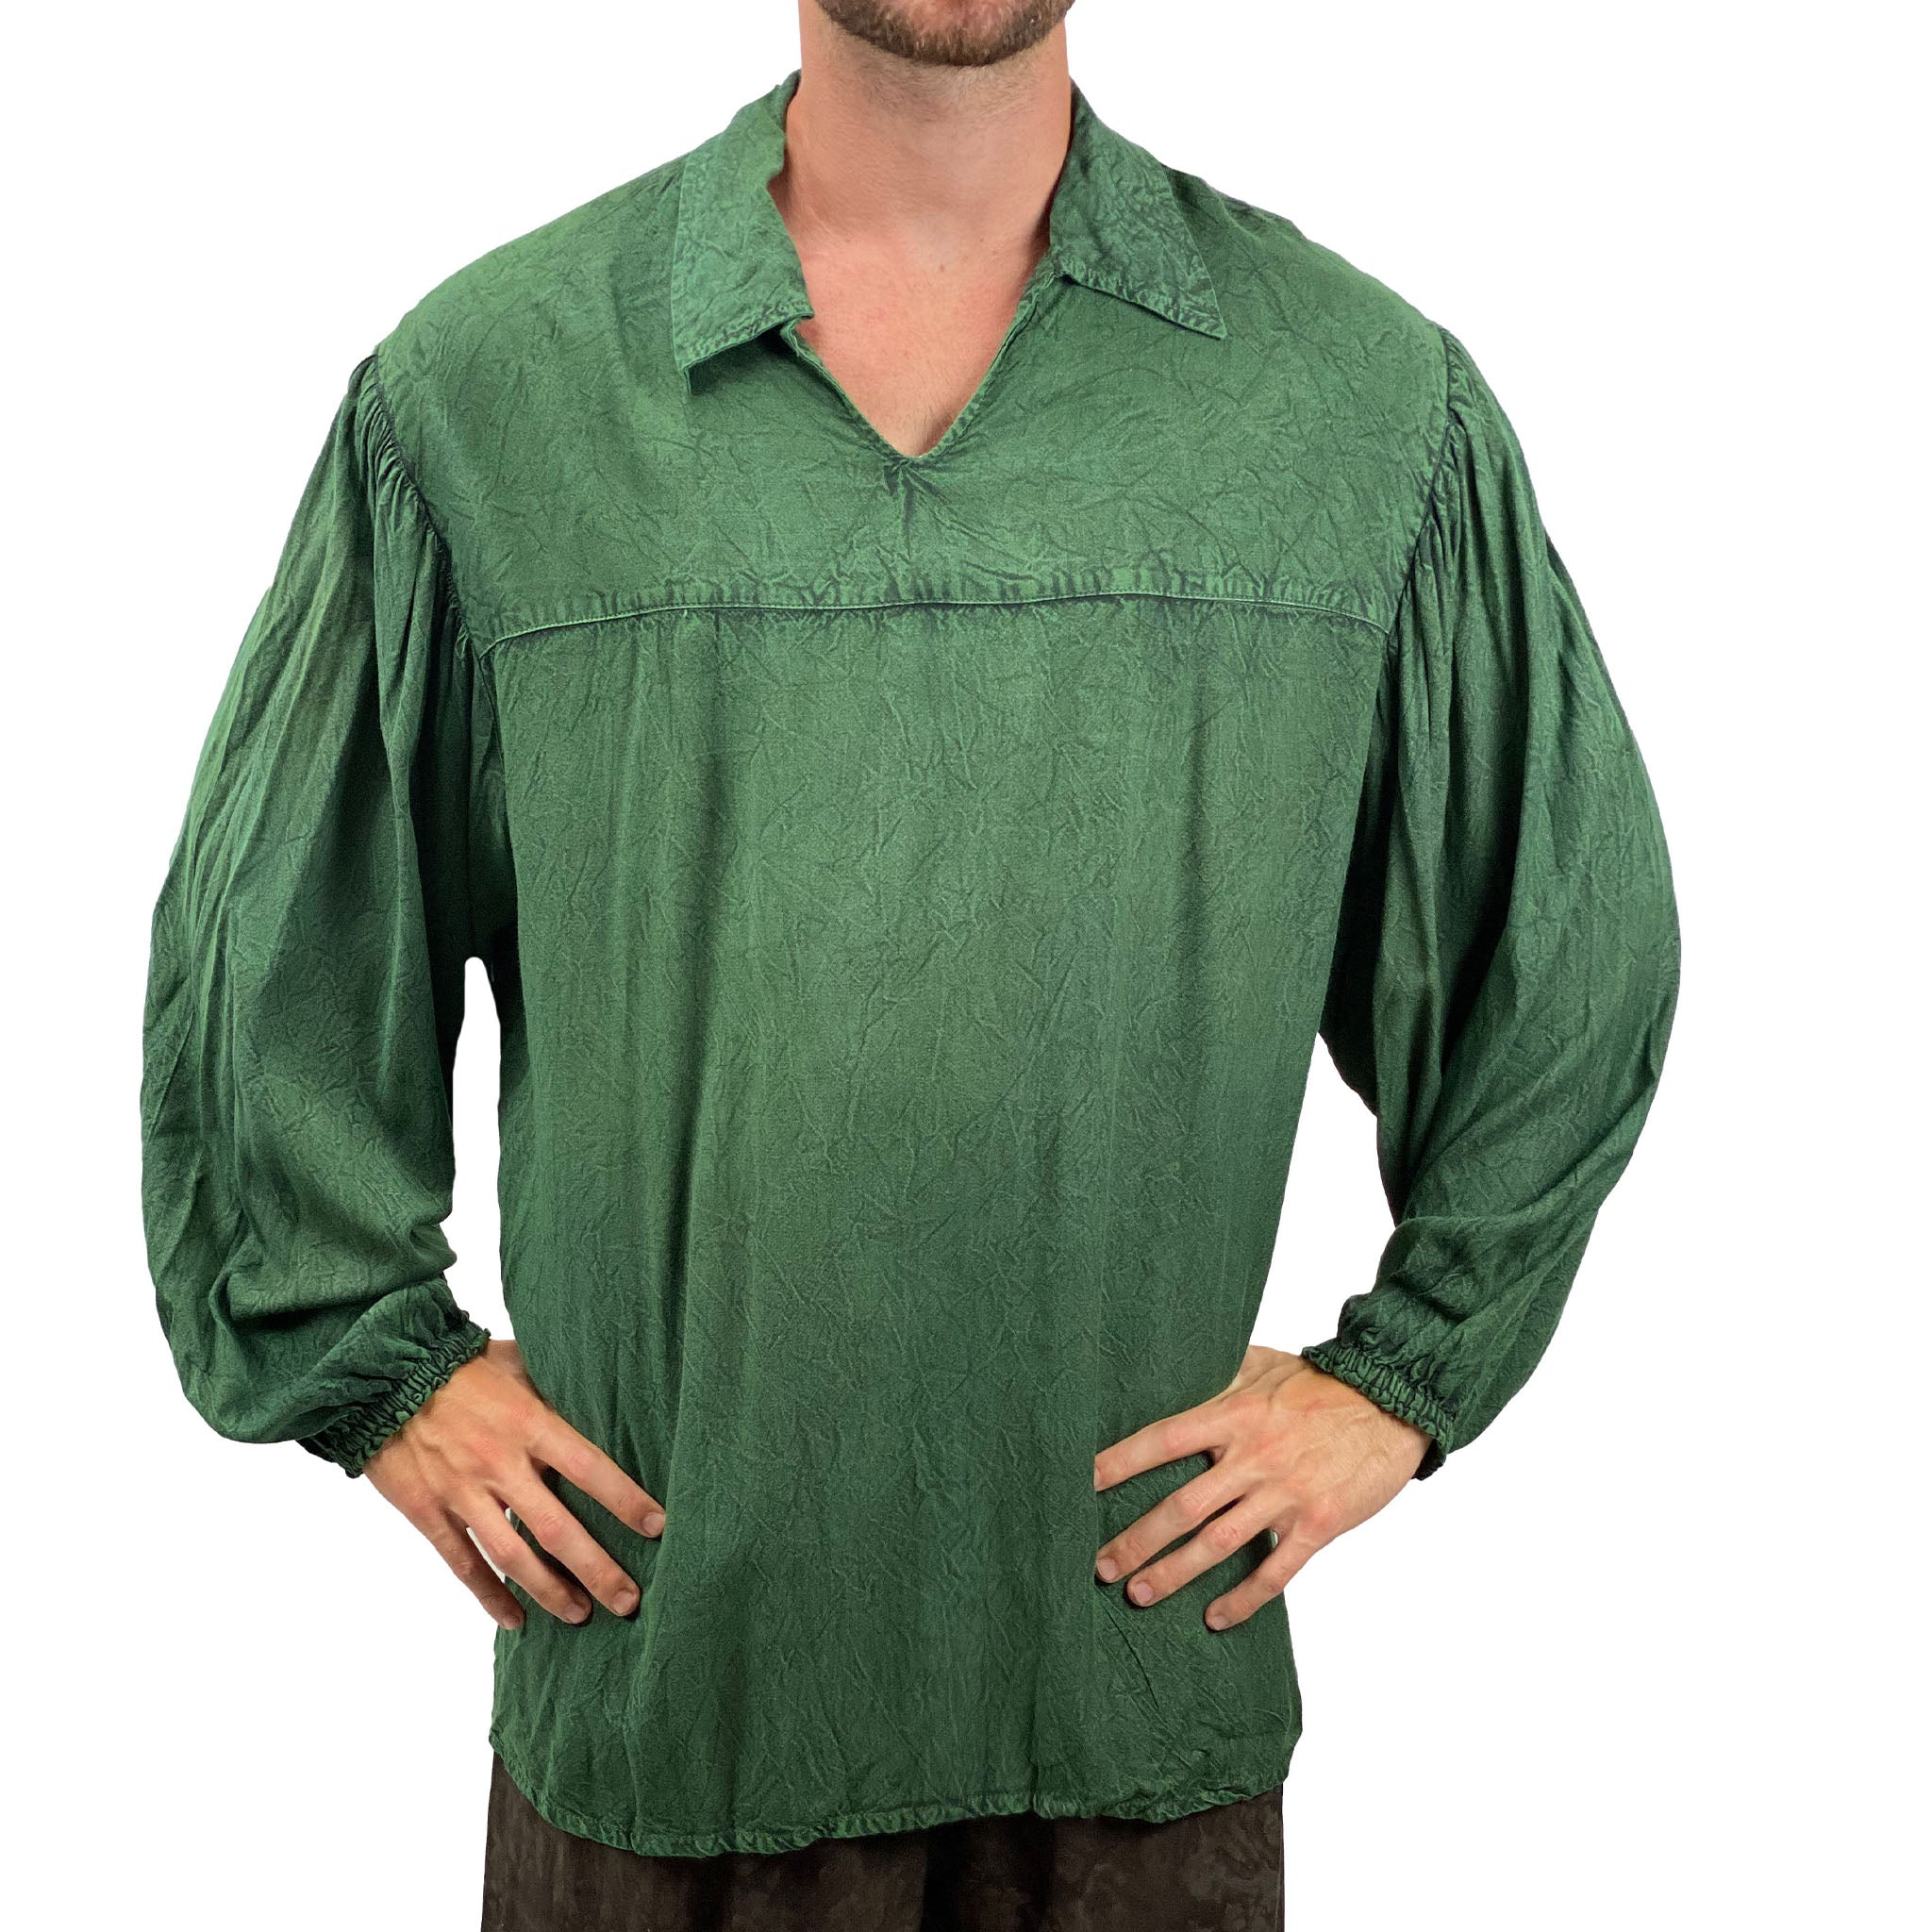 Mens Renaissance Shirt mens pirate shirt Green